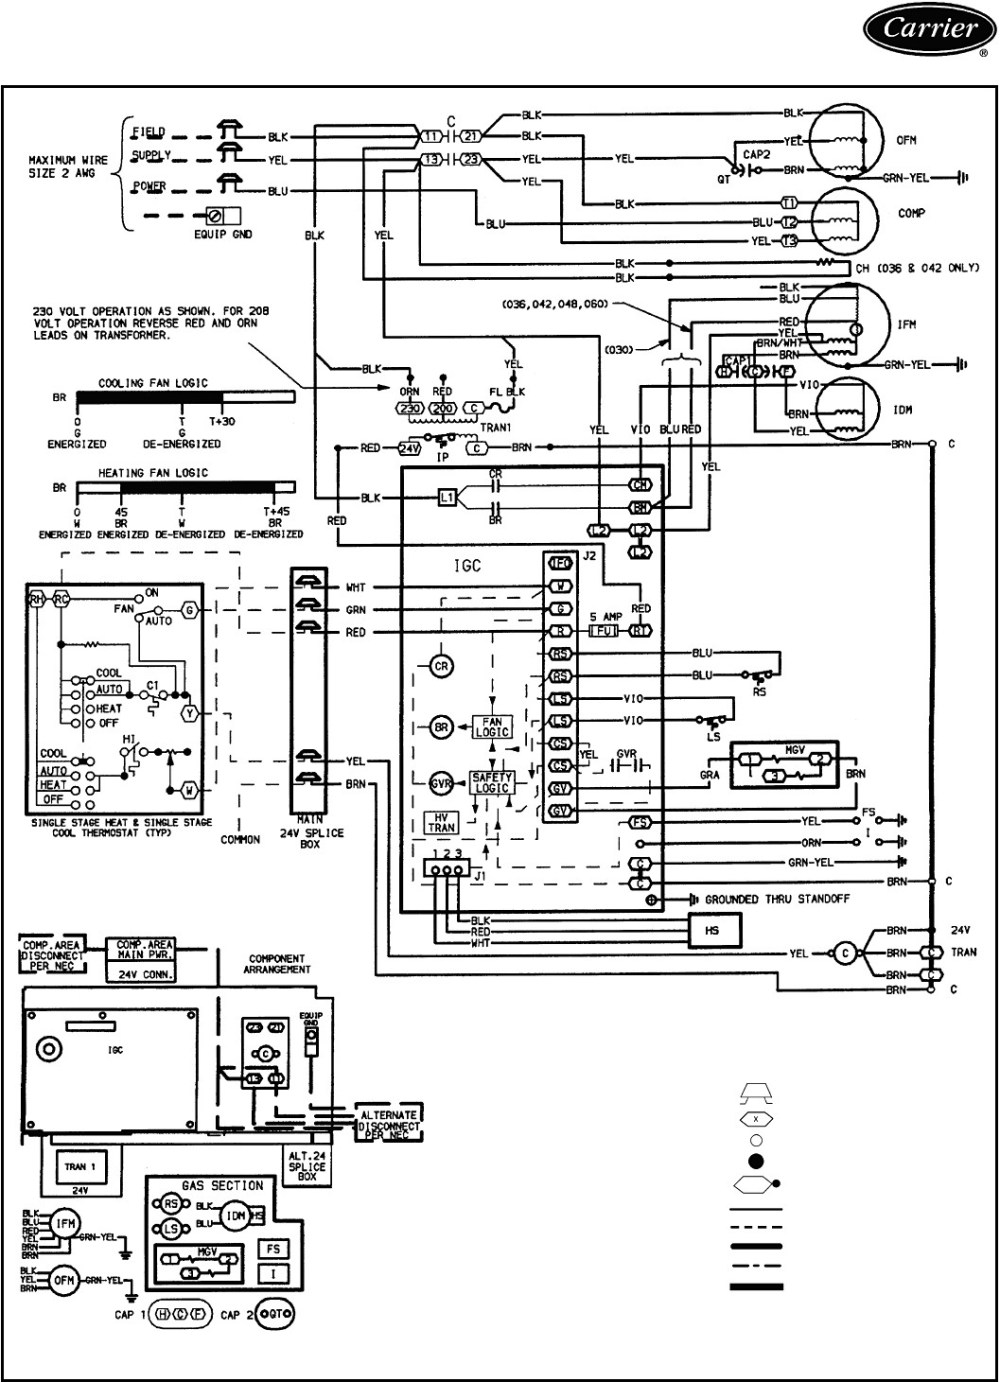 medium resolution of carrier condensing unit wiring diagram diagrams schematics